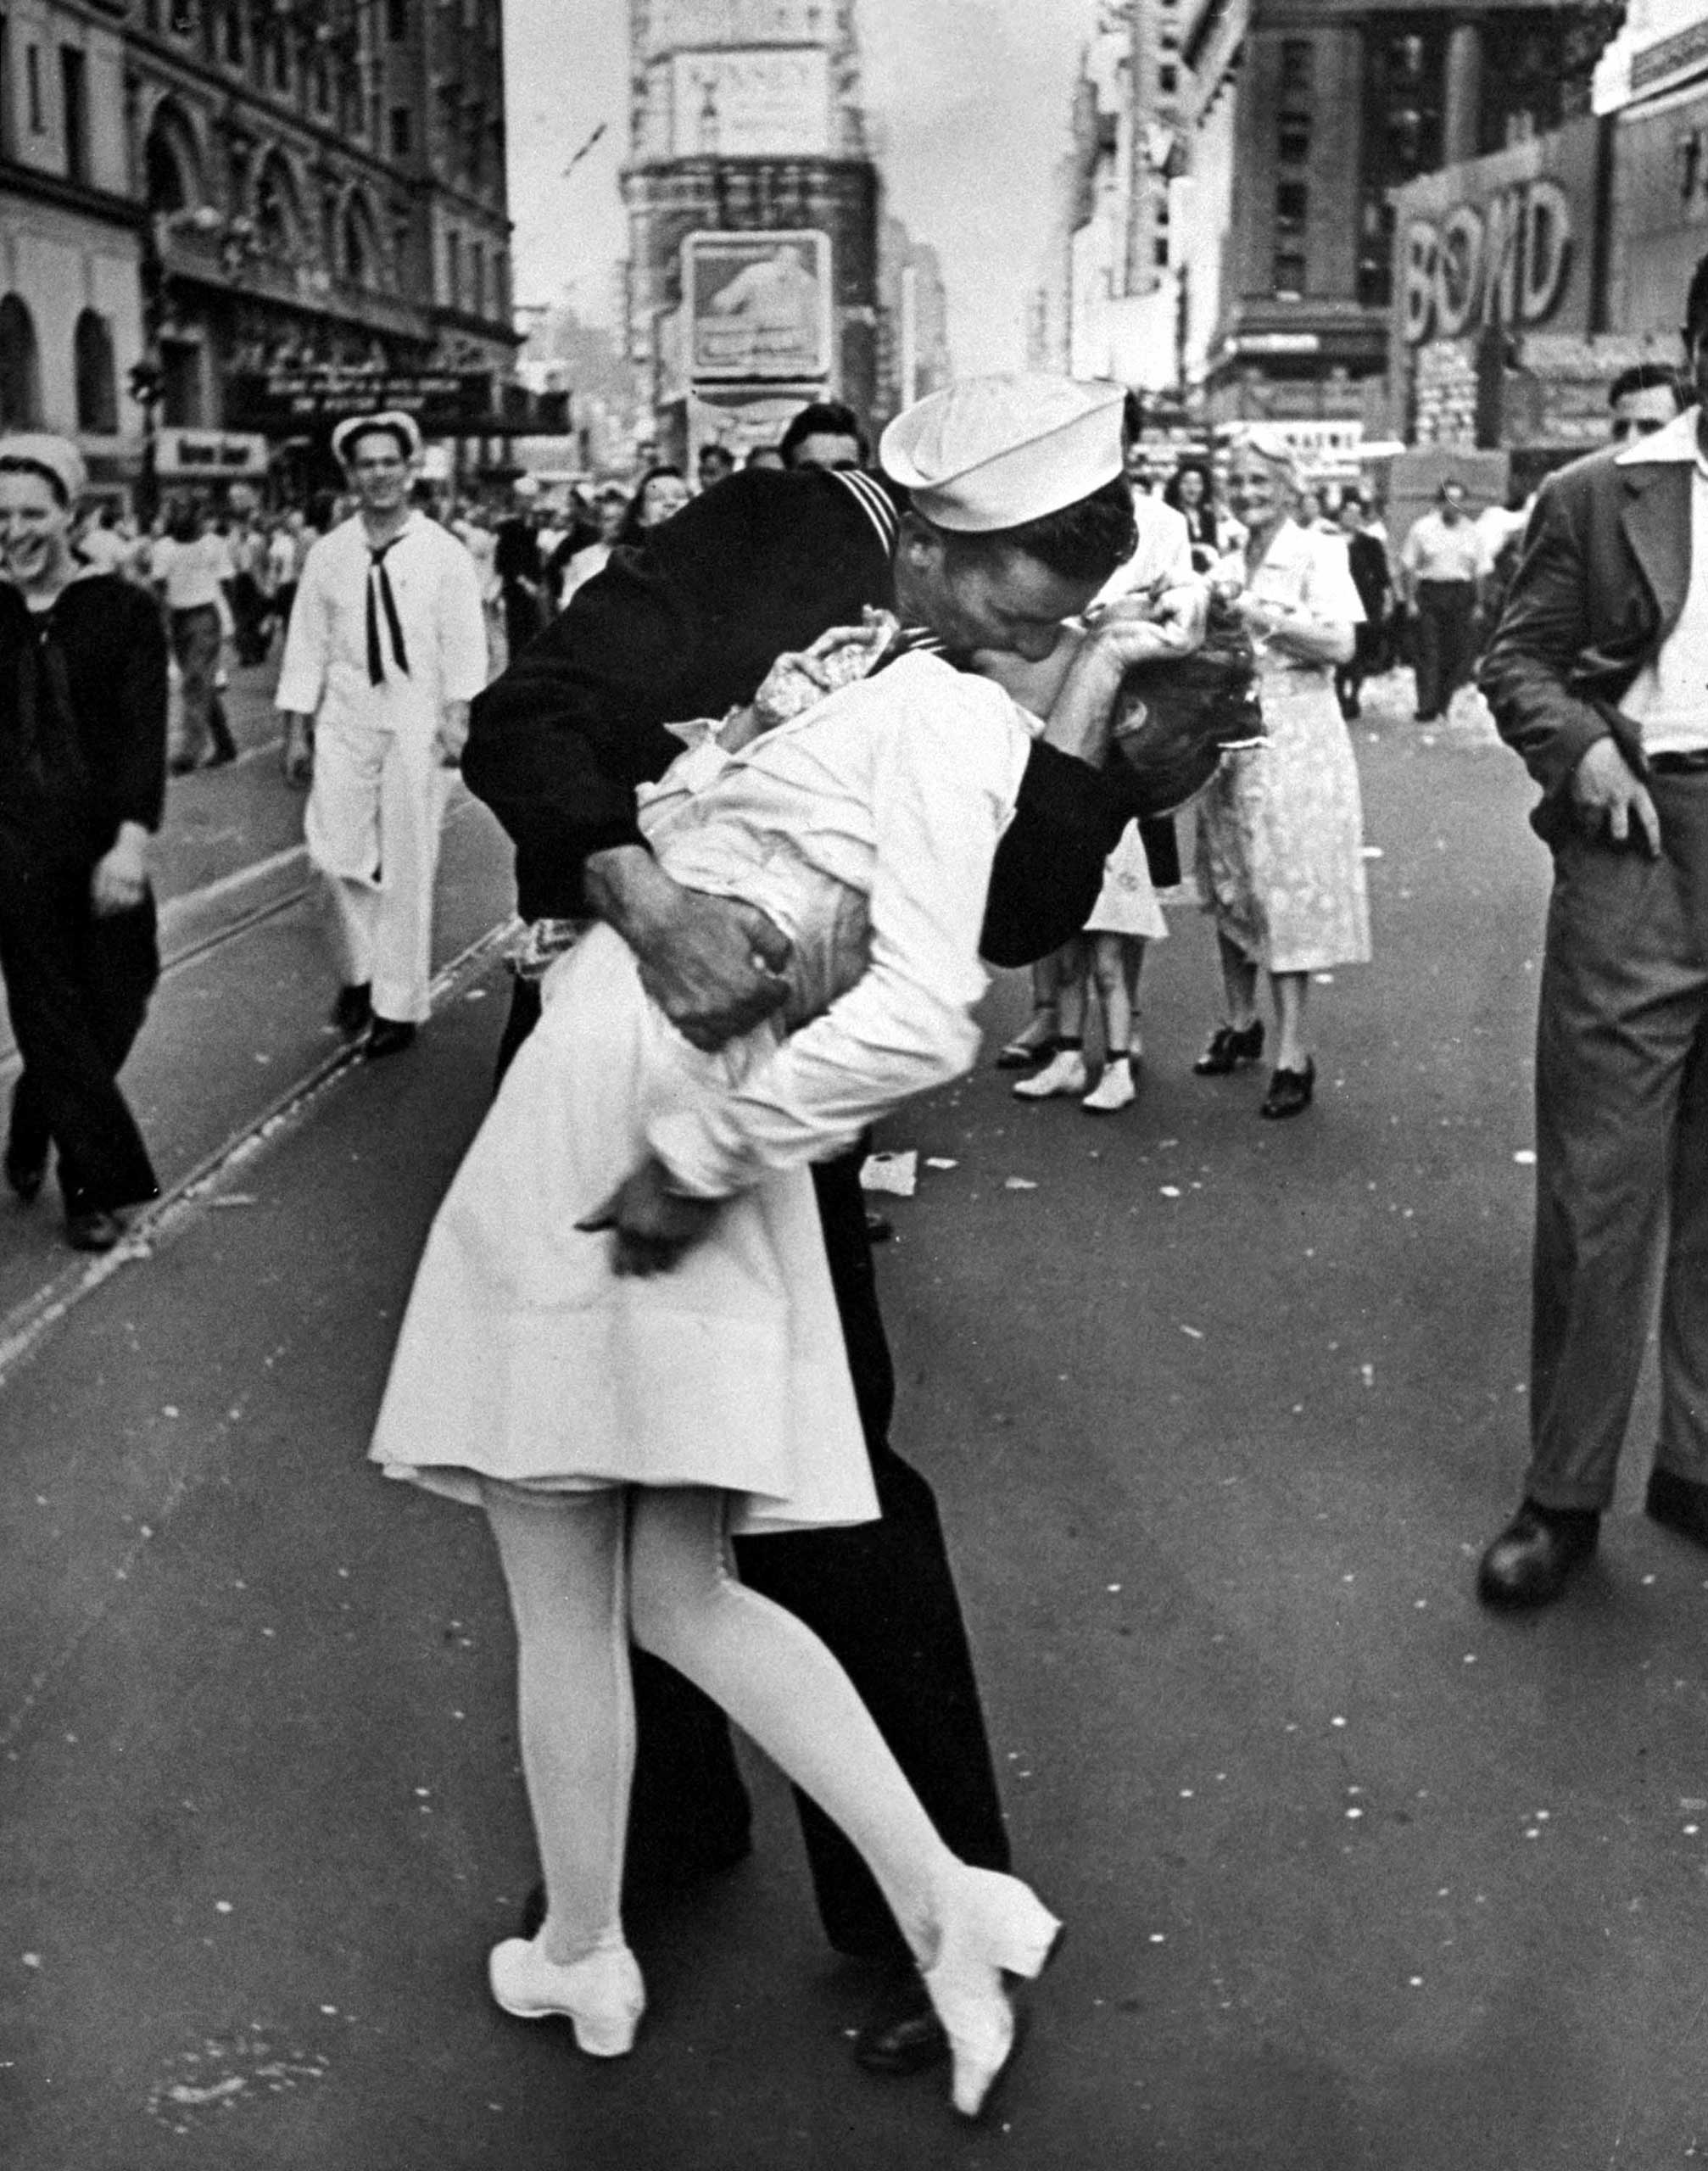 an iconic ww2 kiss photograph